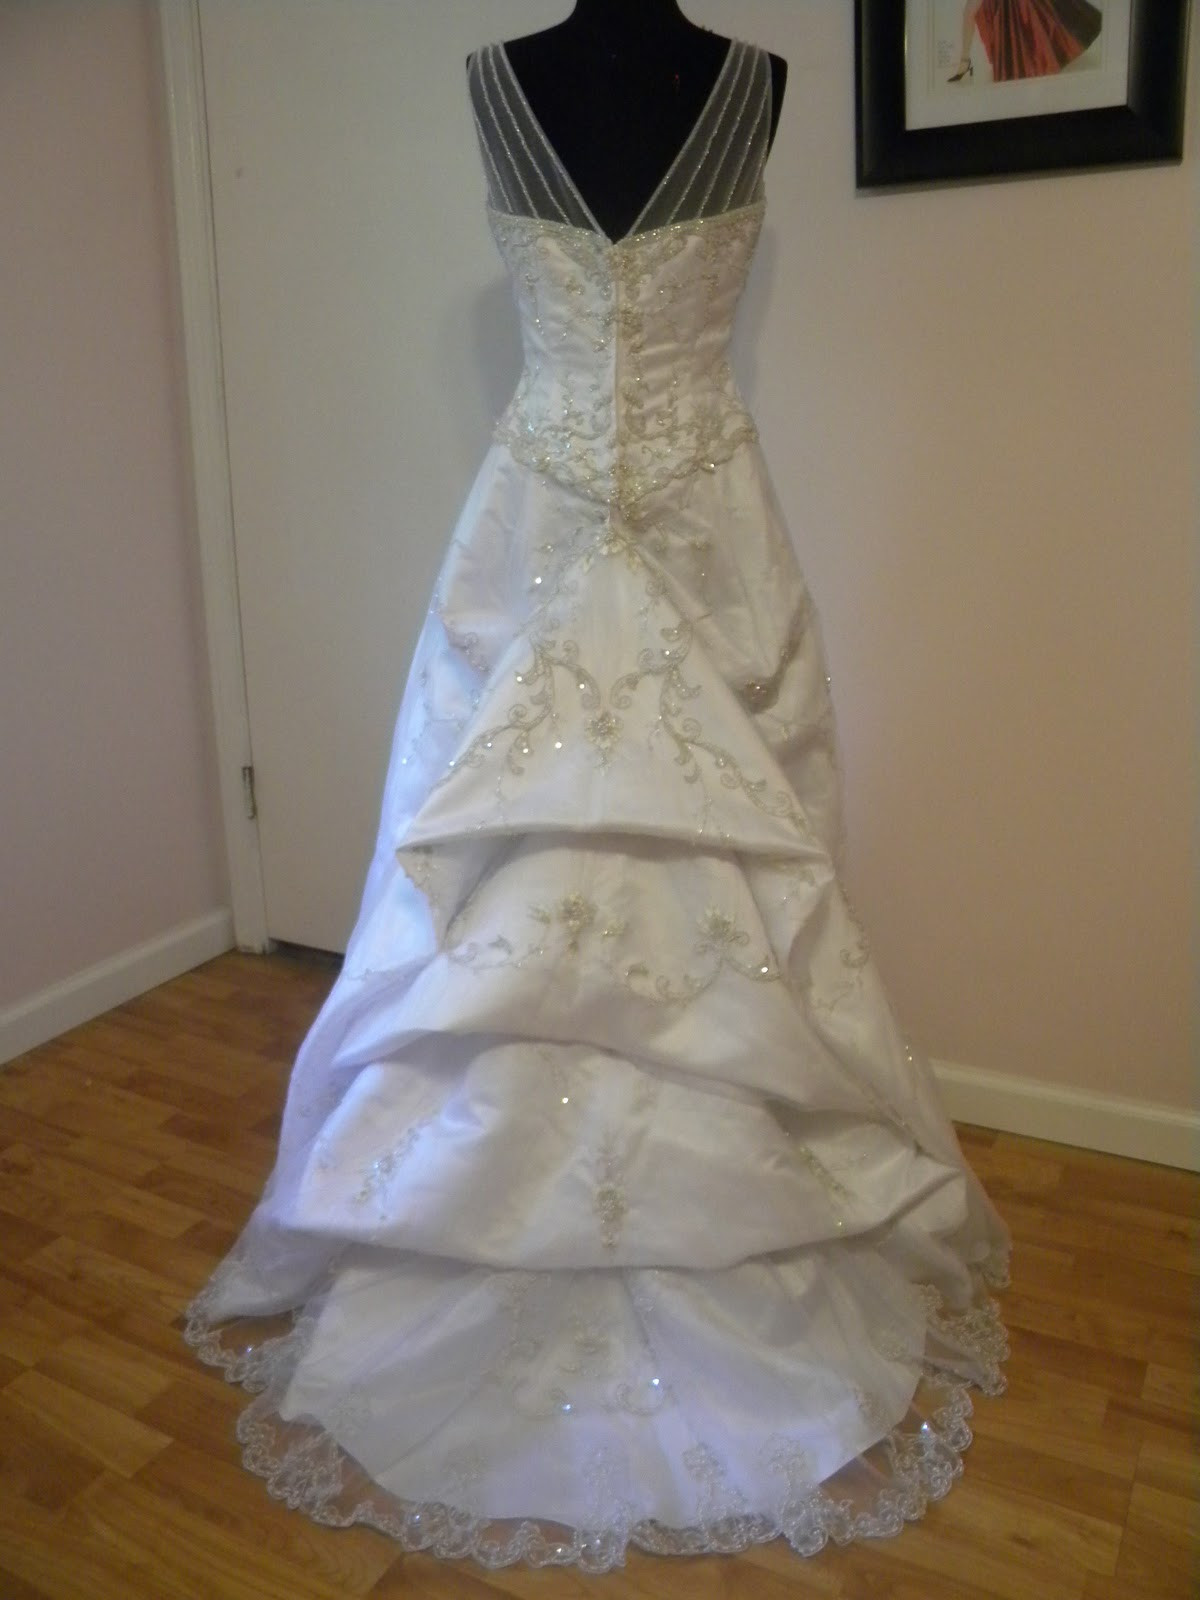 Best ideas about Wedding Dress Bustle DIY . Save or Pin Hustle your bustle Now.